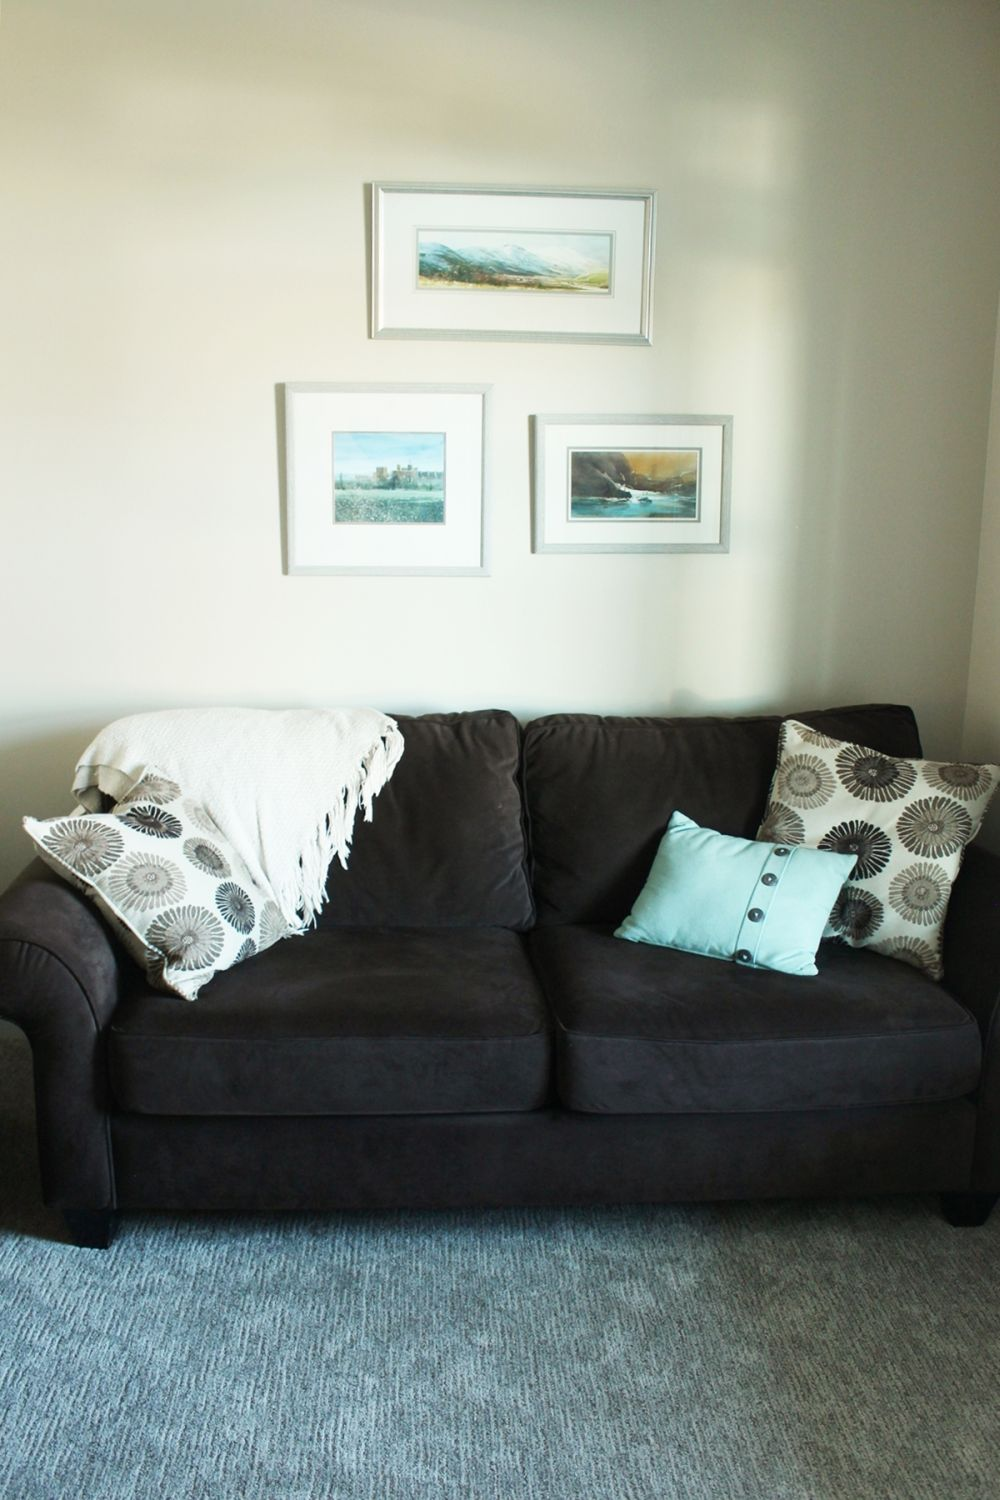 Framed pictures above the sofa